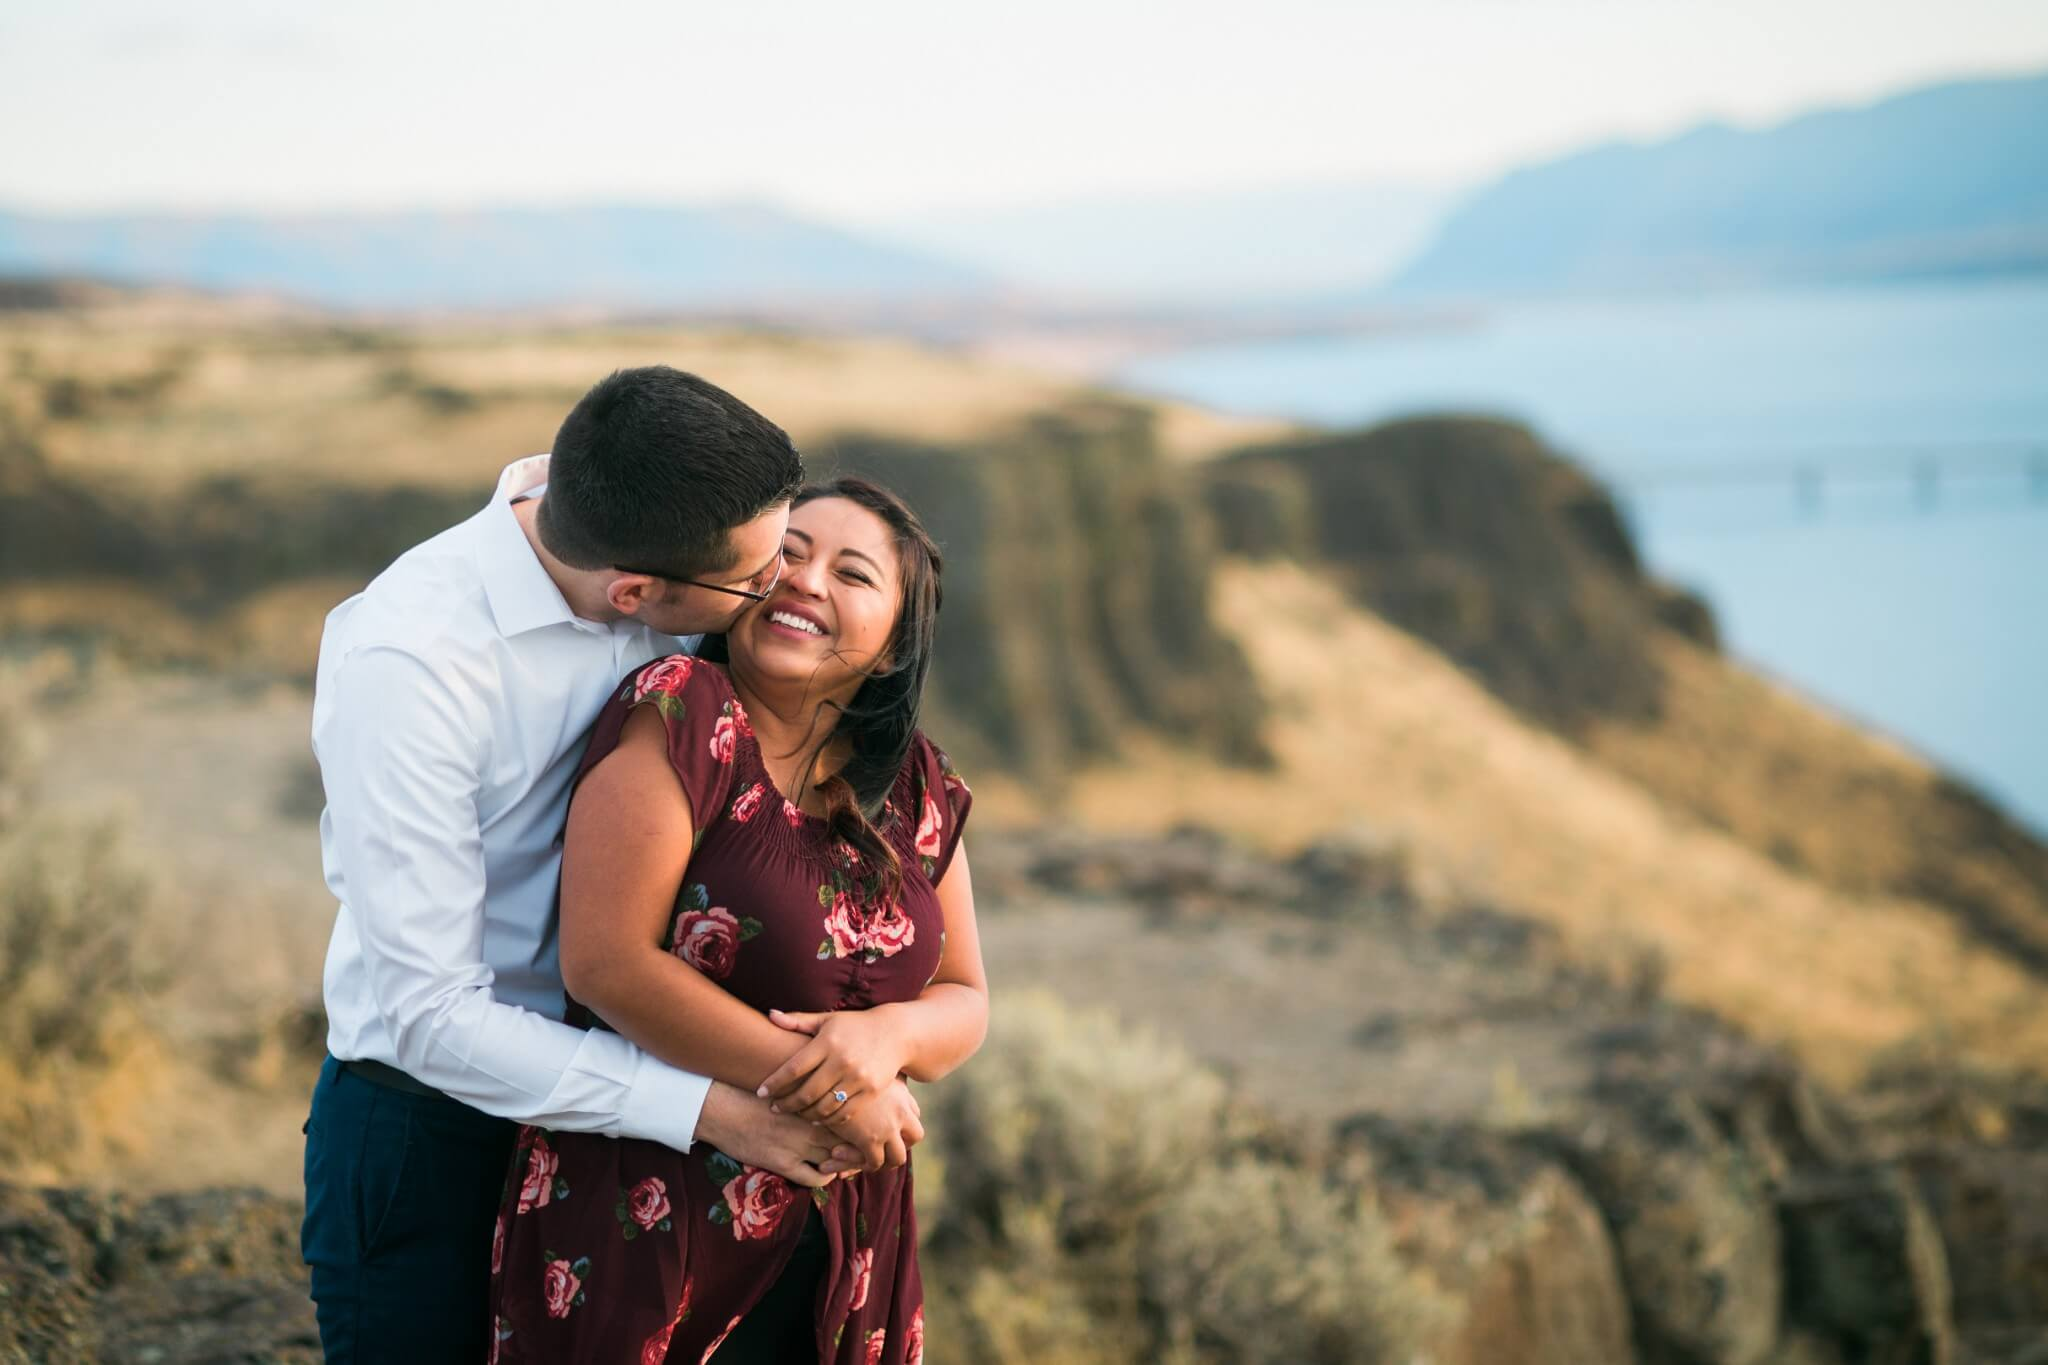 Lesly & Michael Vantage Engagement by Bill Weisgerber Spokane Photographer (36 of 71).jpg